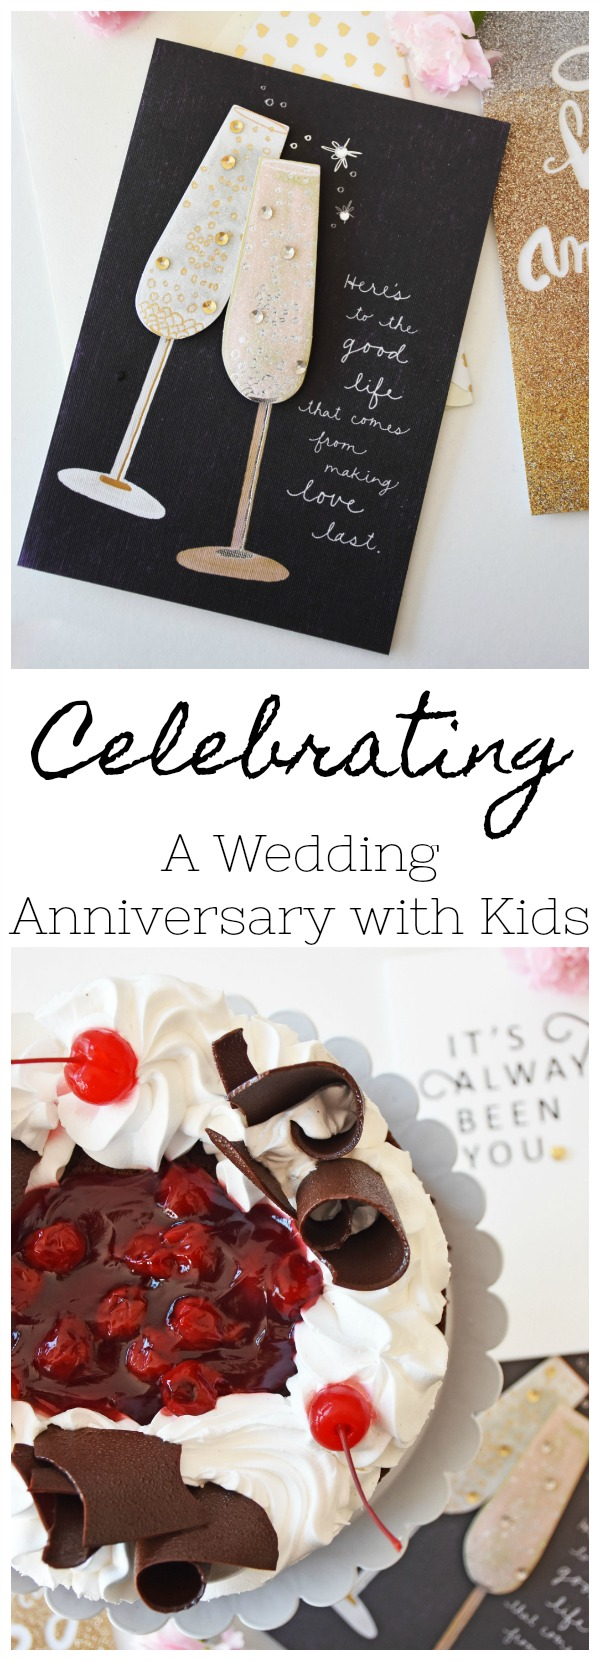 Celebrating our Wedding Anniversary with Kids